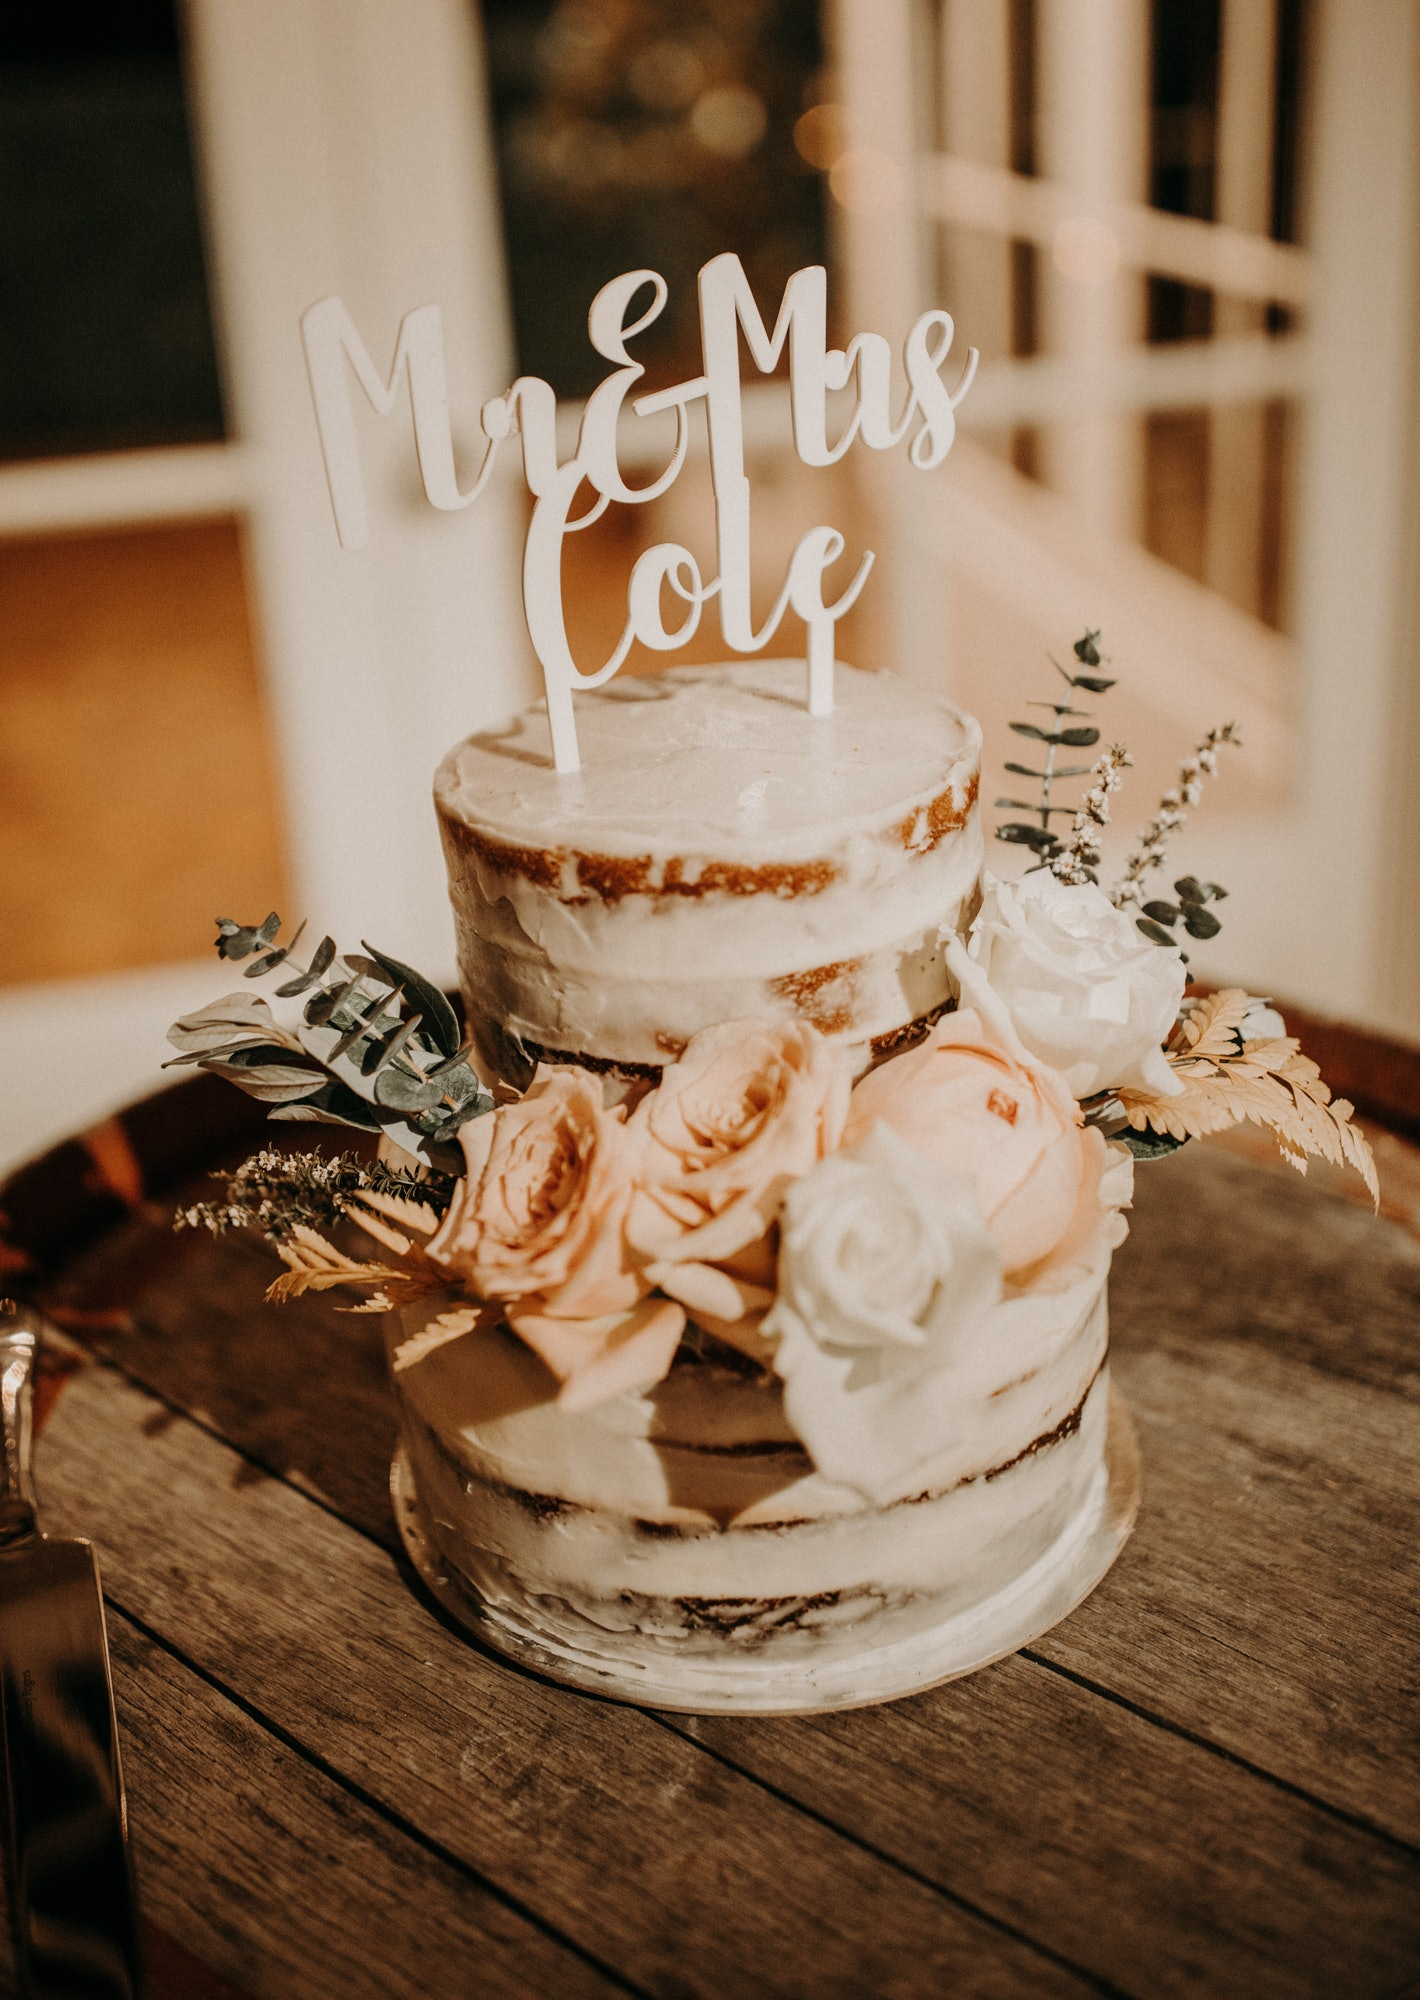 Wedding Cake with floral decorations